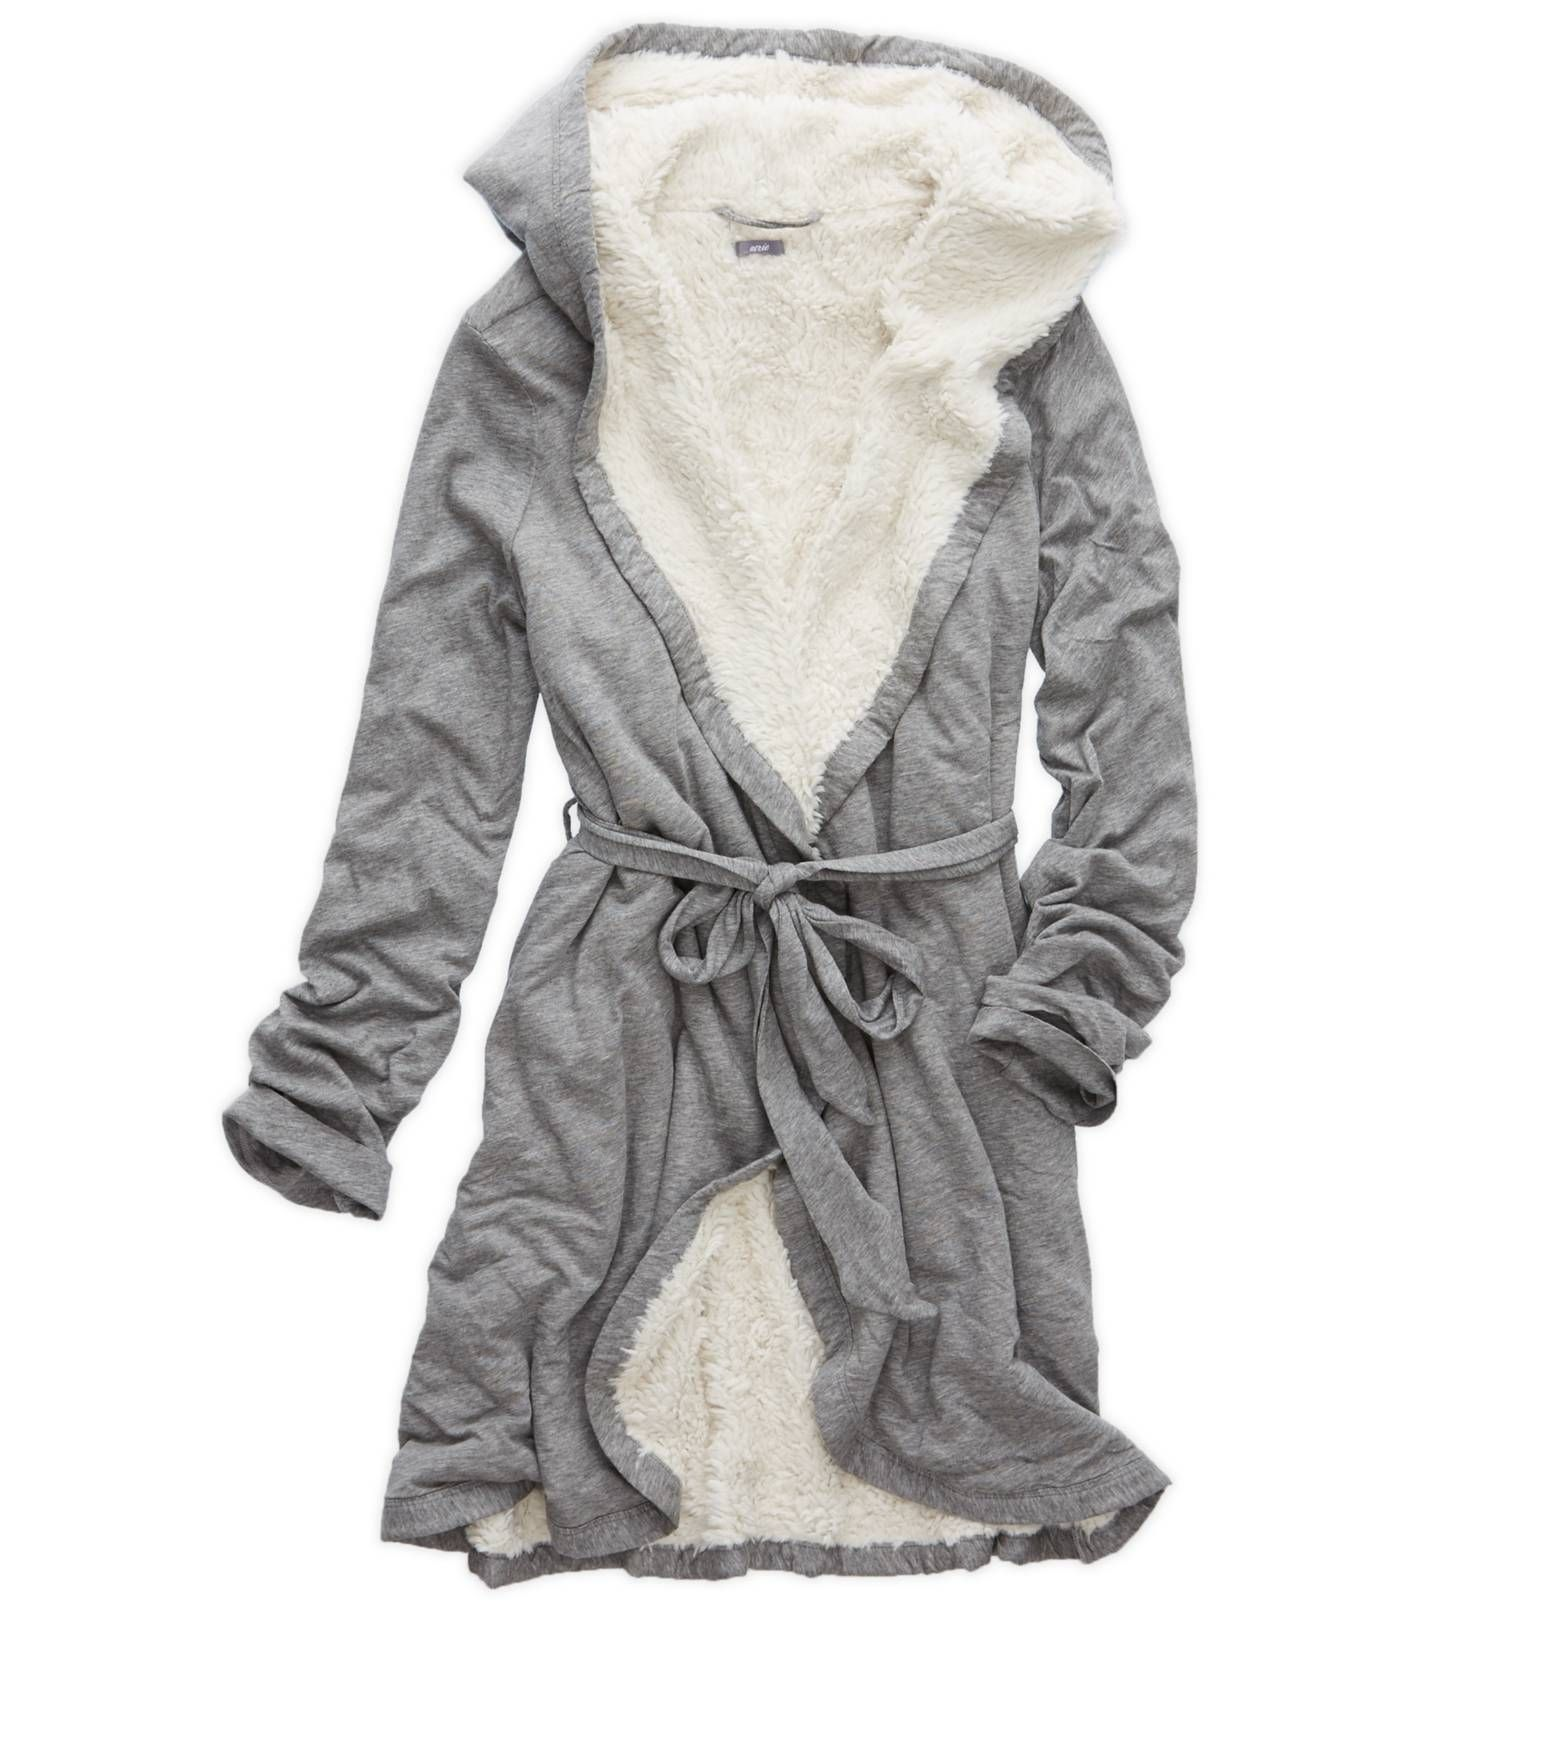 Gift Aerie For Grey Perfect Heather Robe Cozy The Dark cJK3F1Tl